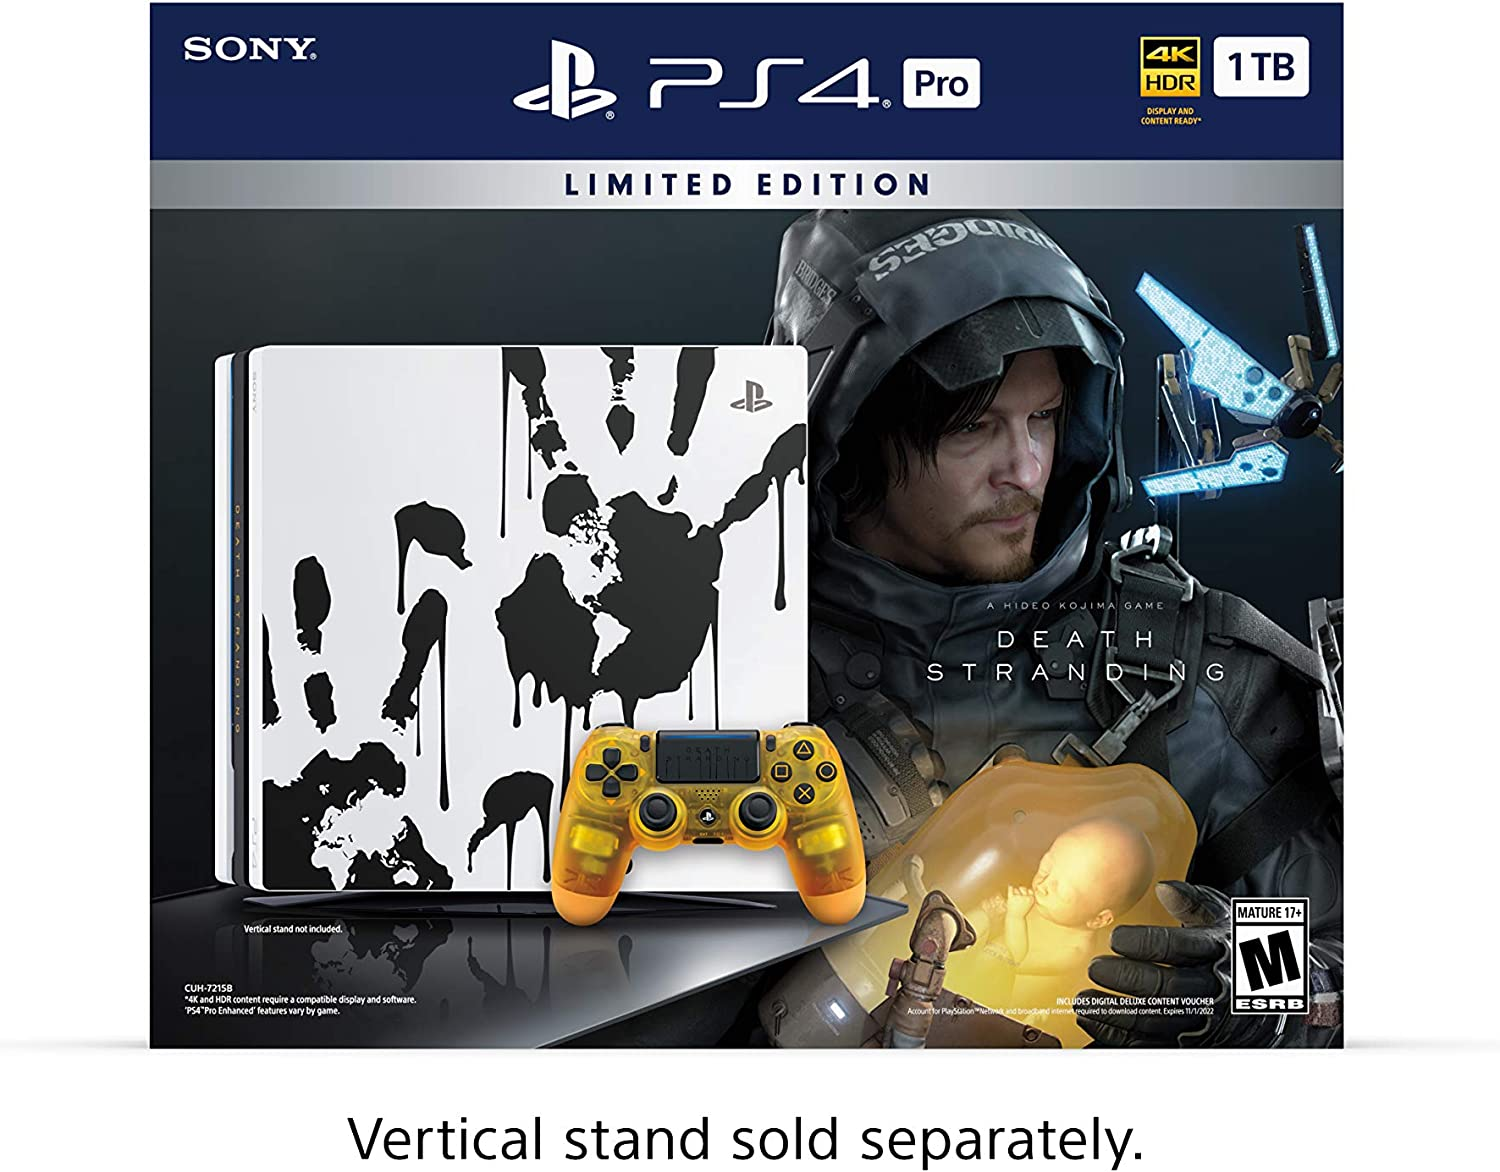 PlayStation 4 Pro 1TB Limited Edition Console – Death Stranding Bundle